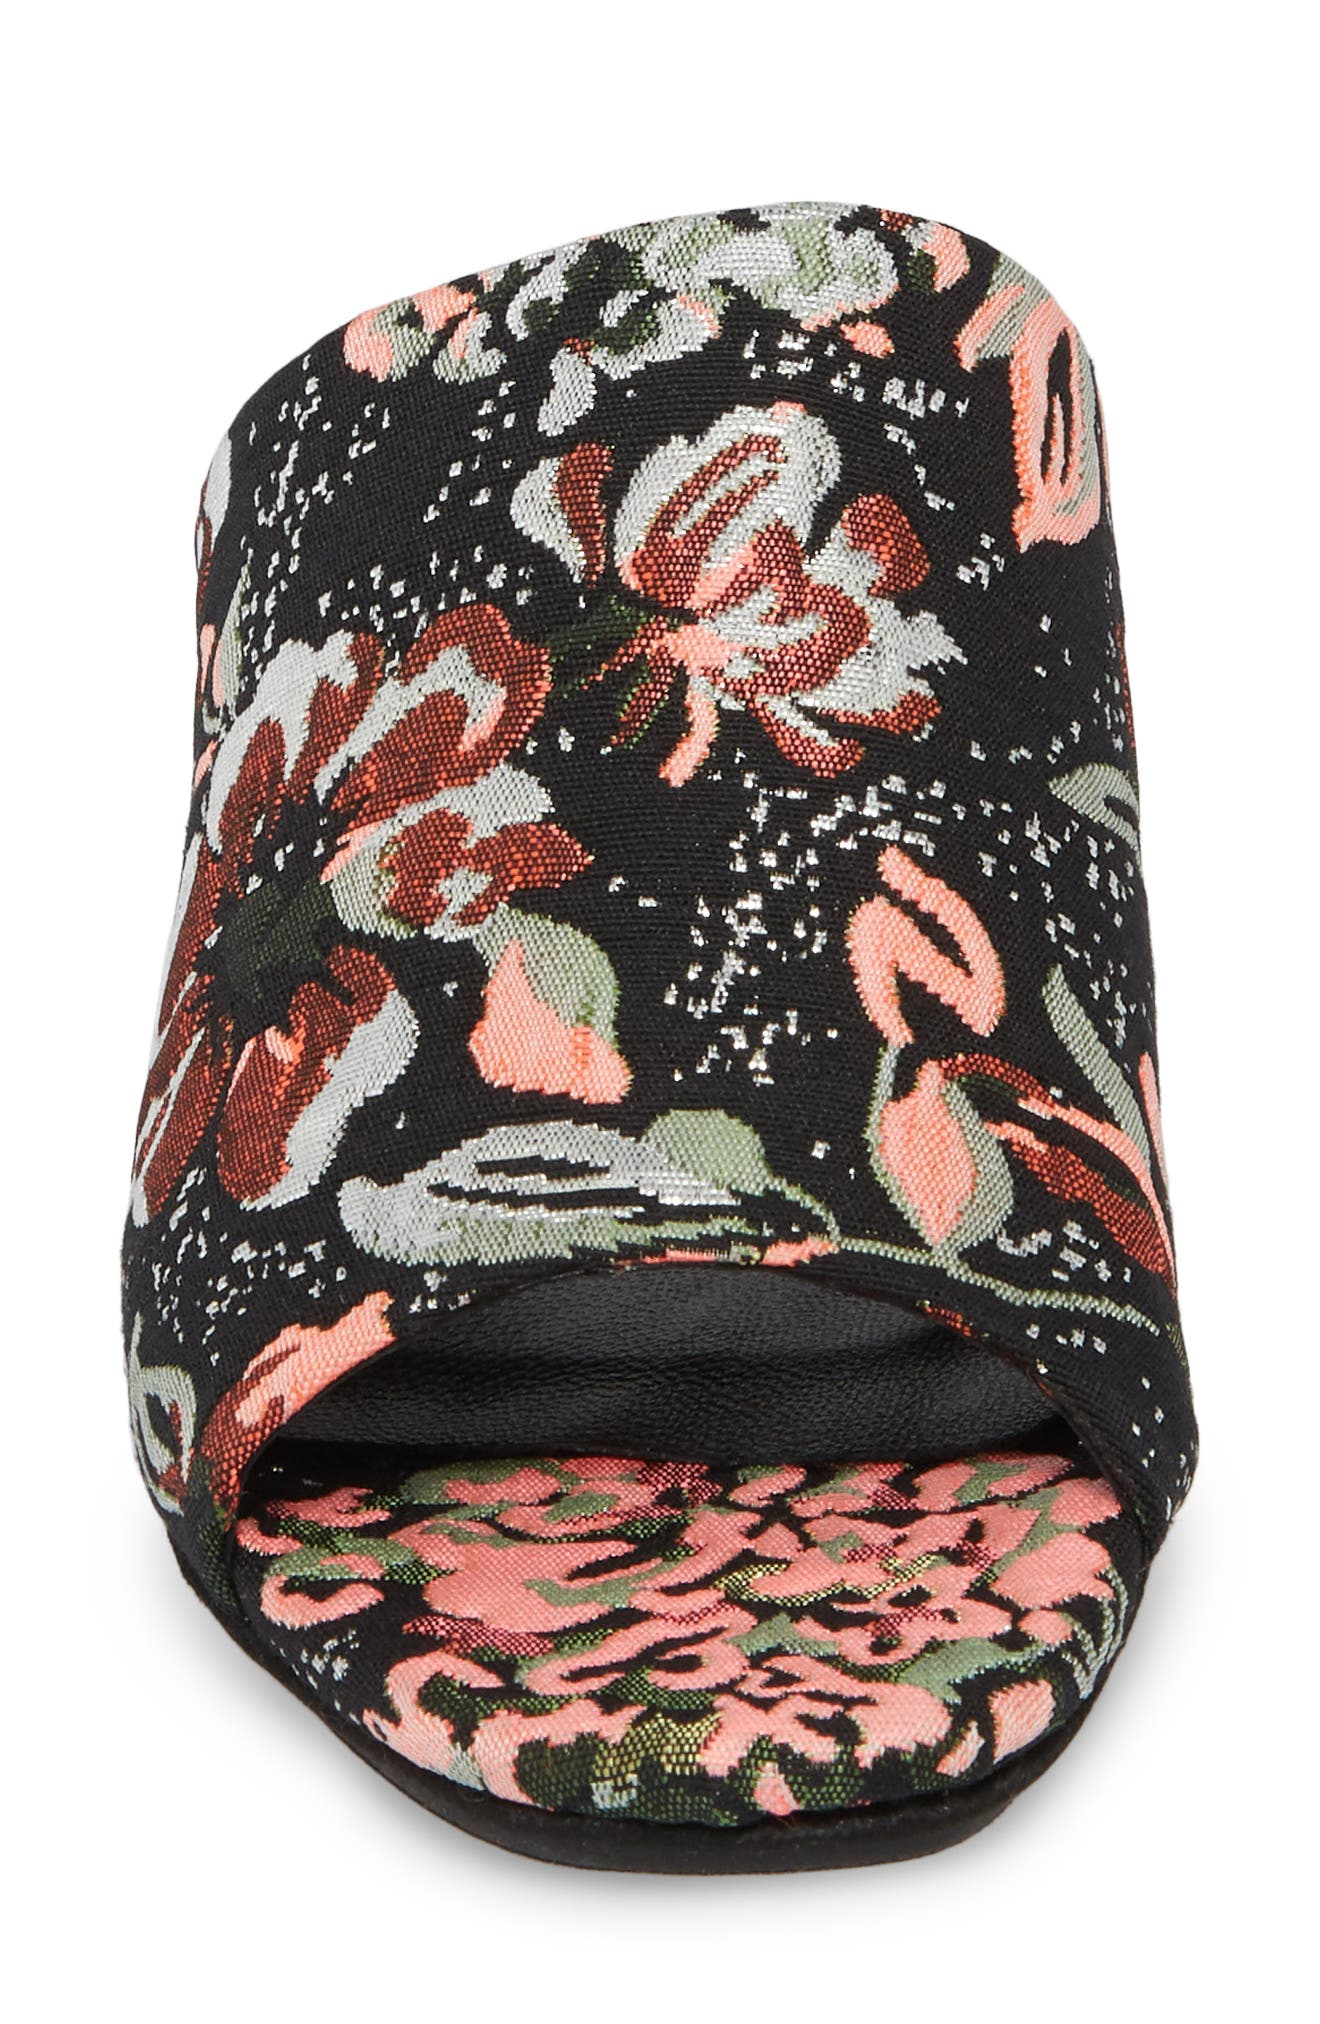 Didi Sandal,                             Alternate thumbnail 4, color,                             Black Floral